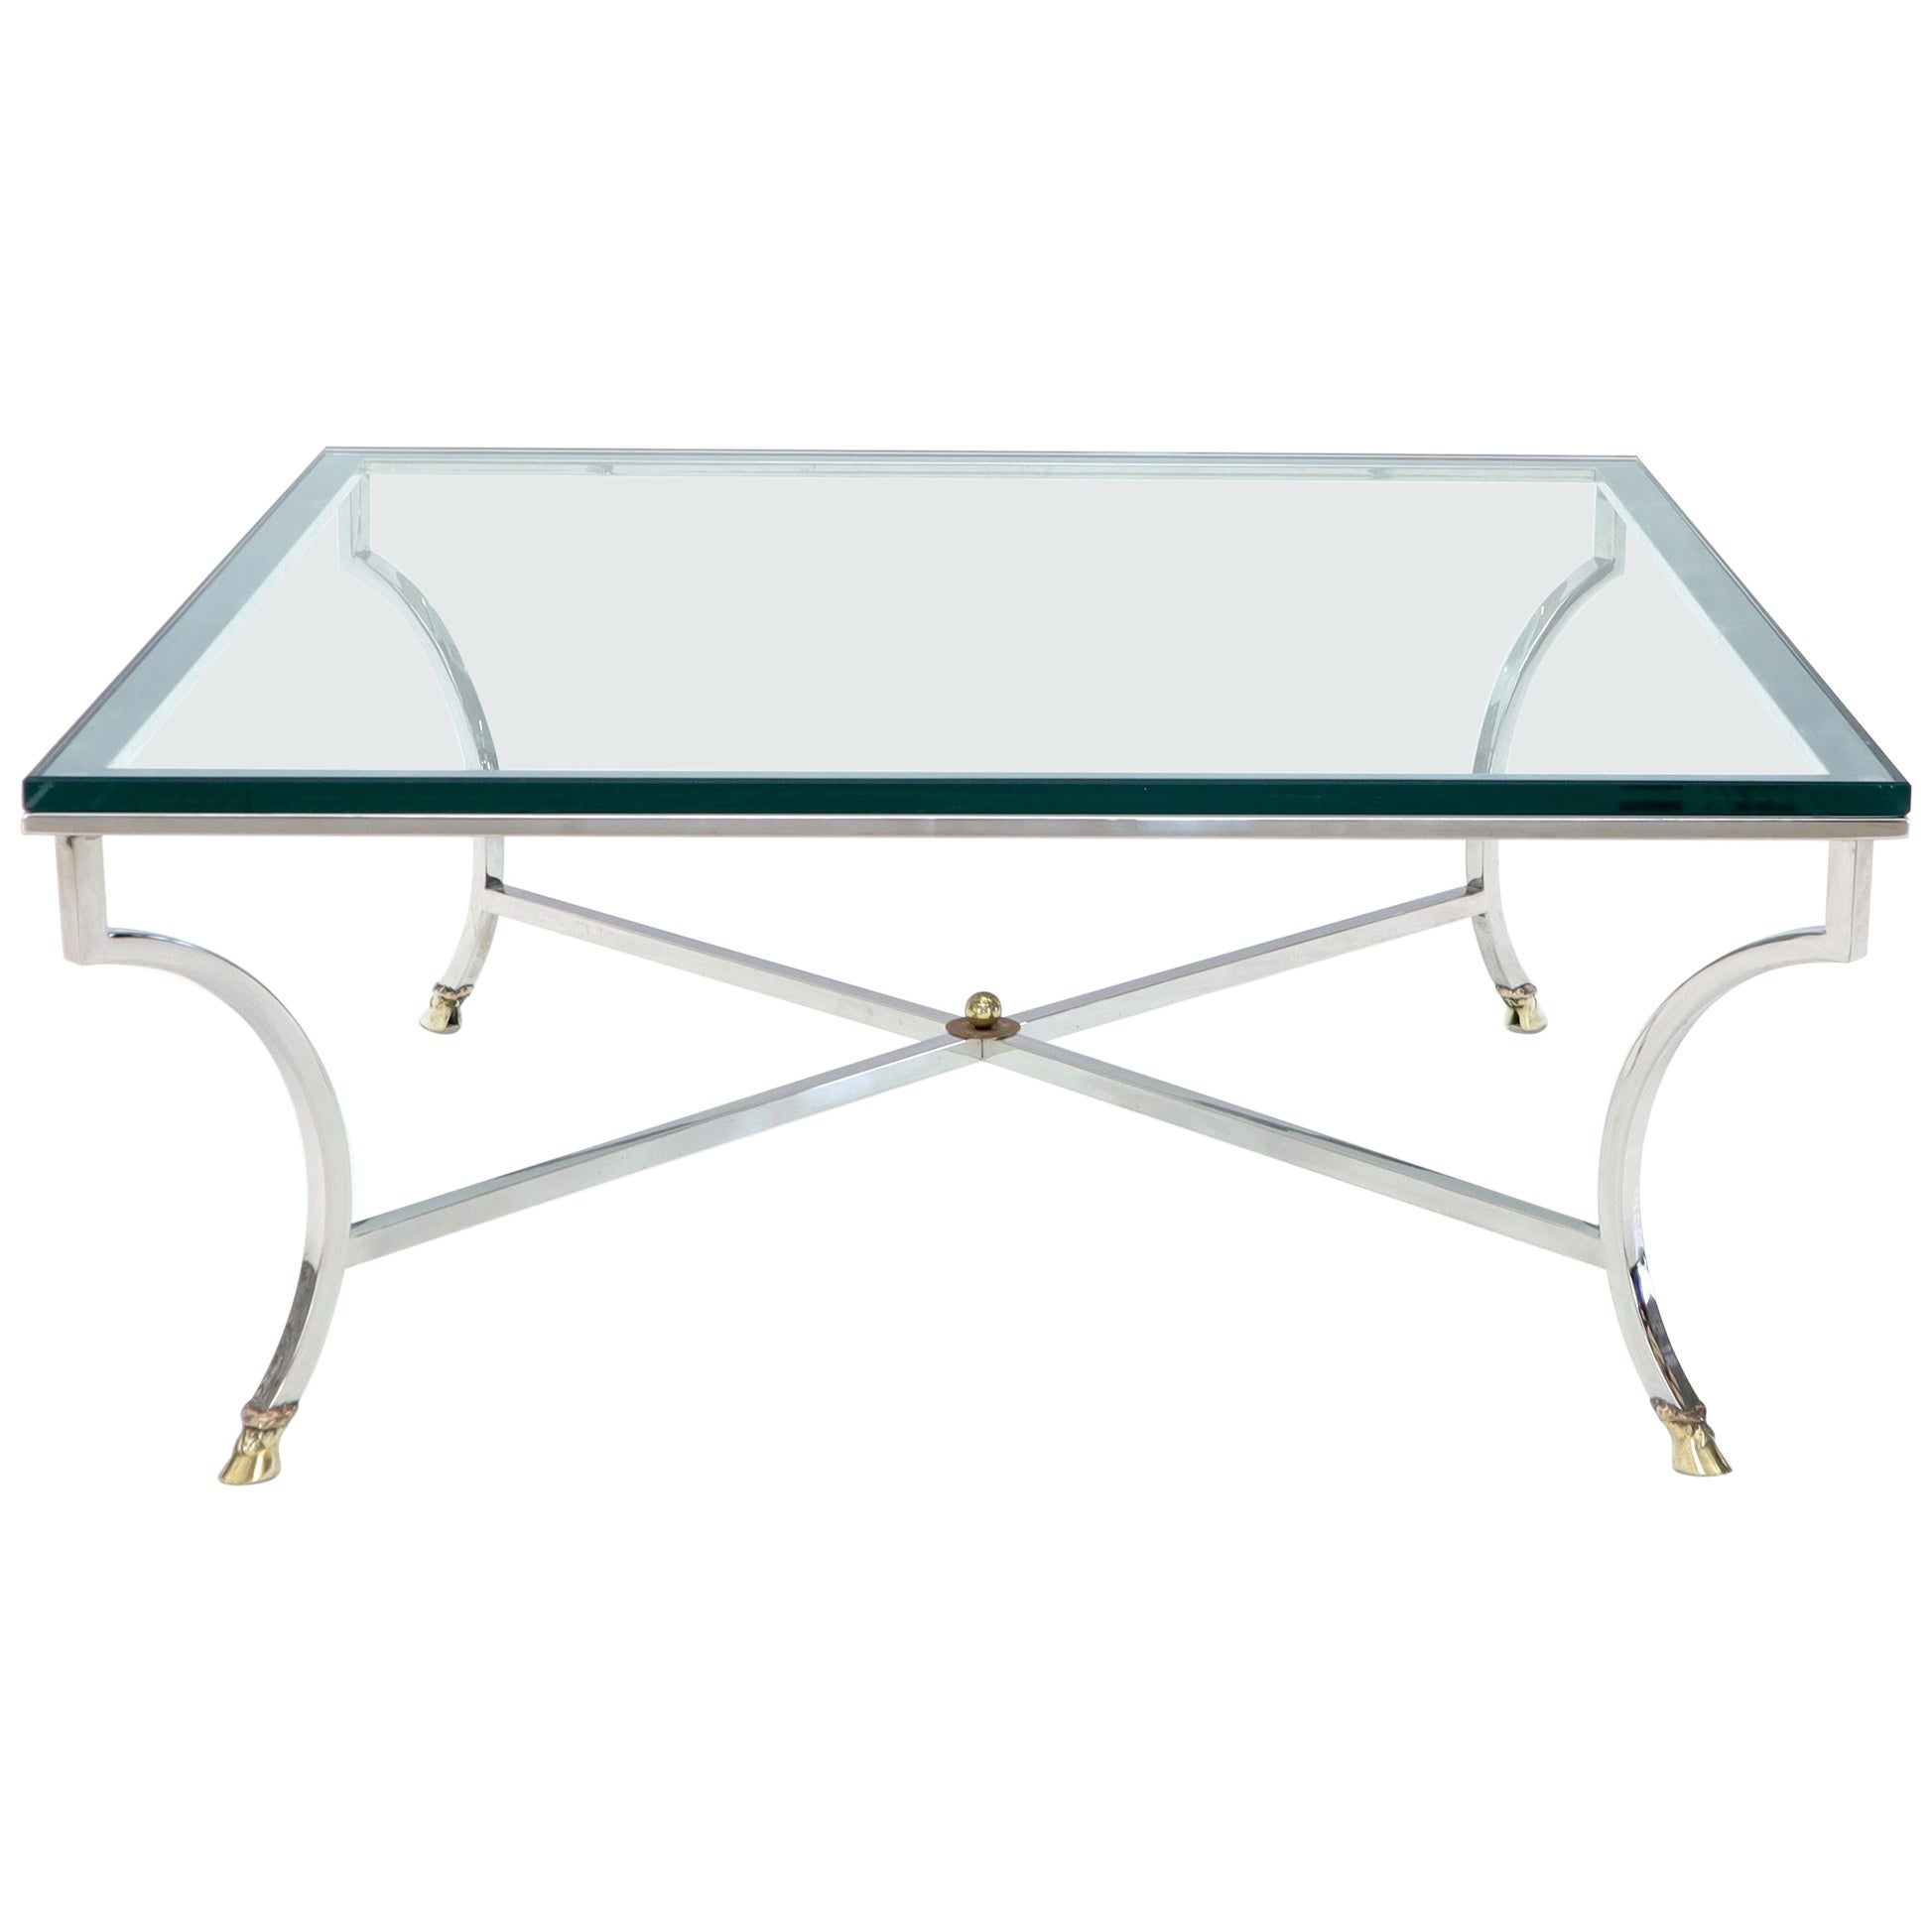 Square Chrome and Brass Hoof Feet Base Coffee Table Thick Glass Top